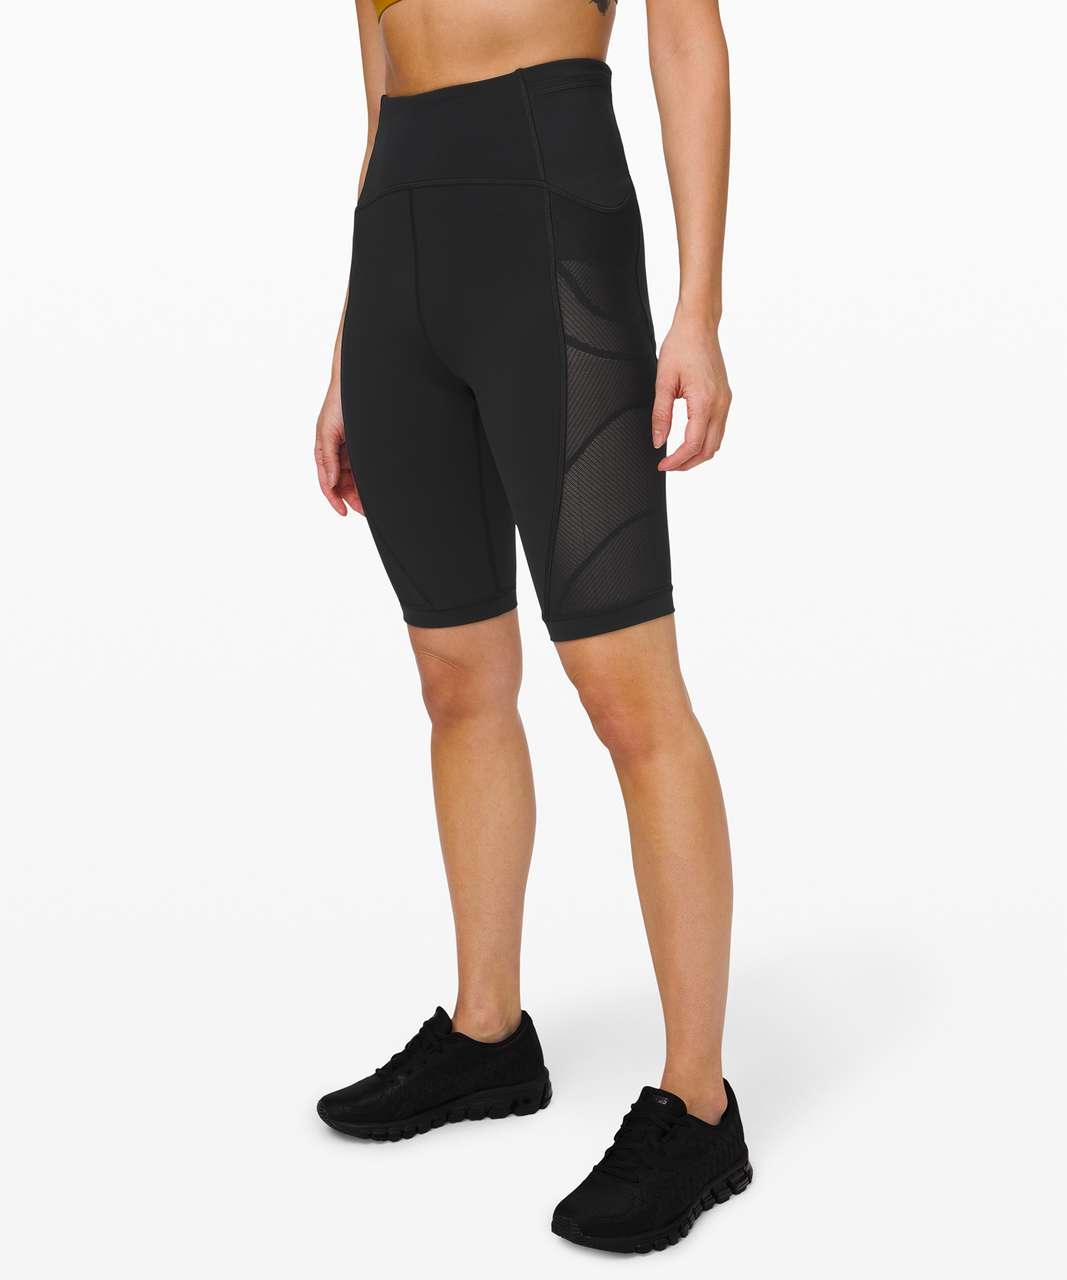 "Lululemon Sheer Will High-Rise Short 10"" *Pulse - Black"